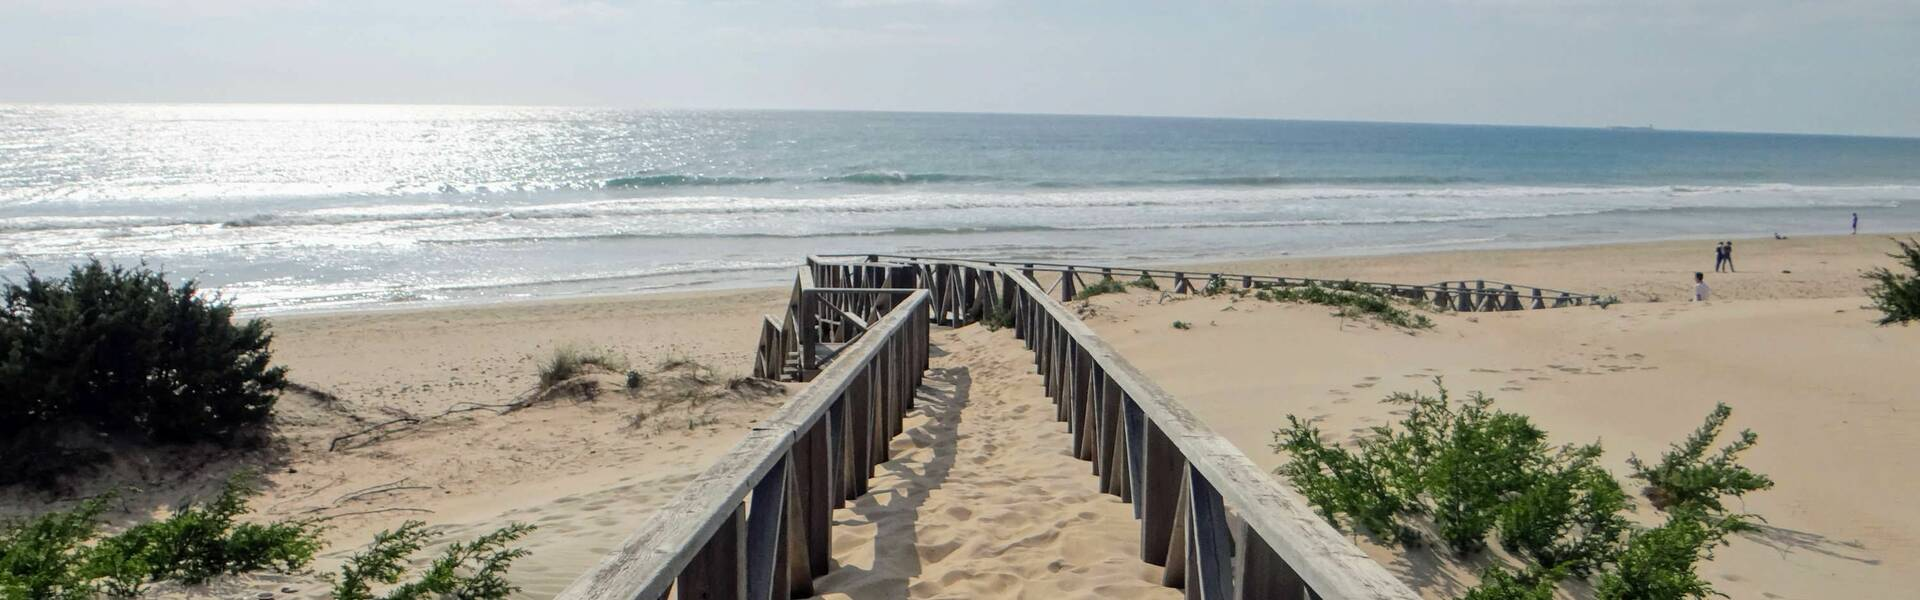 Strand Chiclana Andalusien